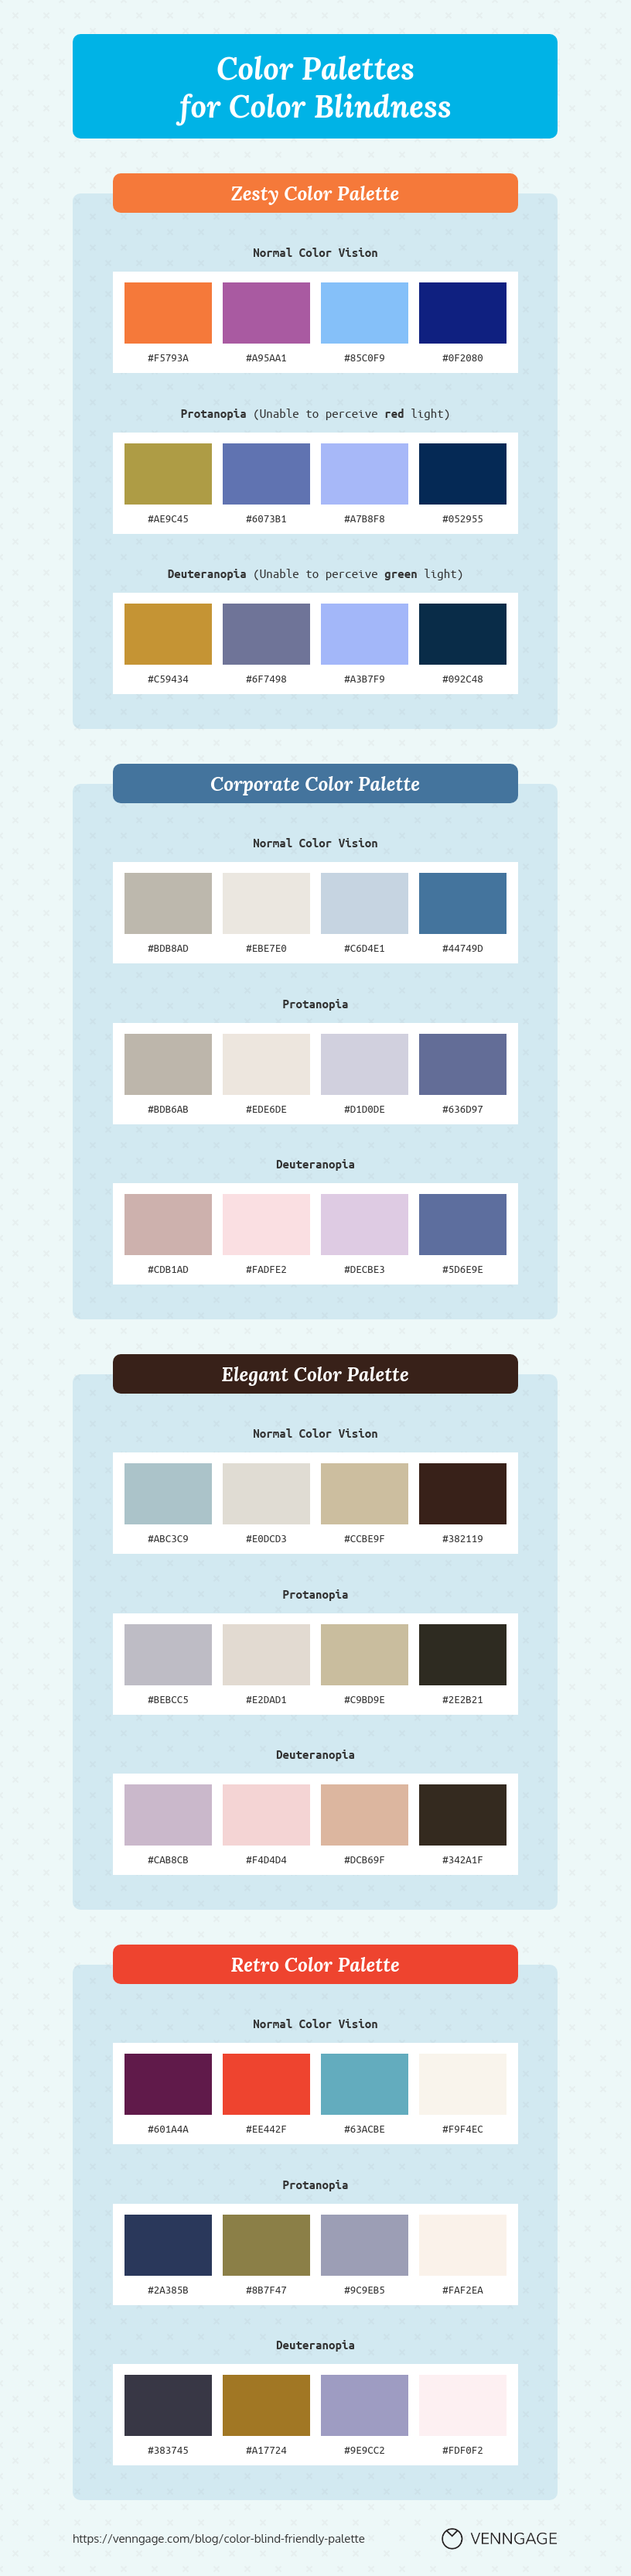 Color Palettes for Color Blindness Infographic Template